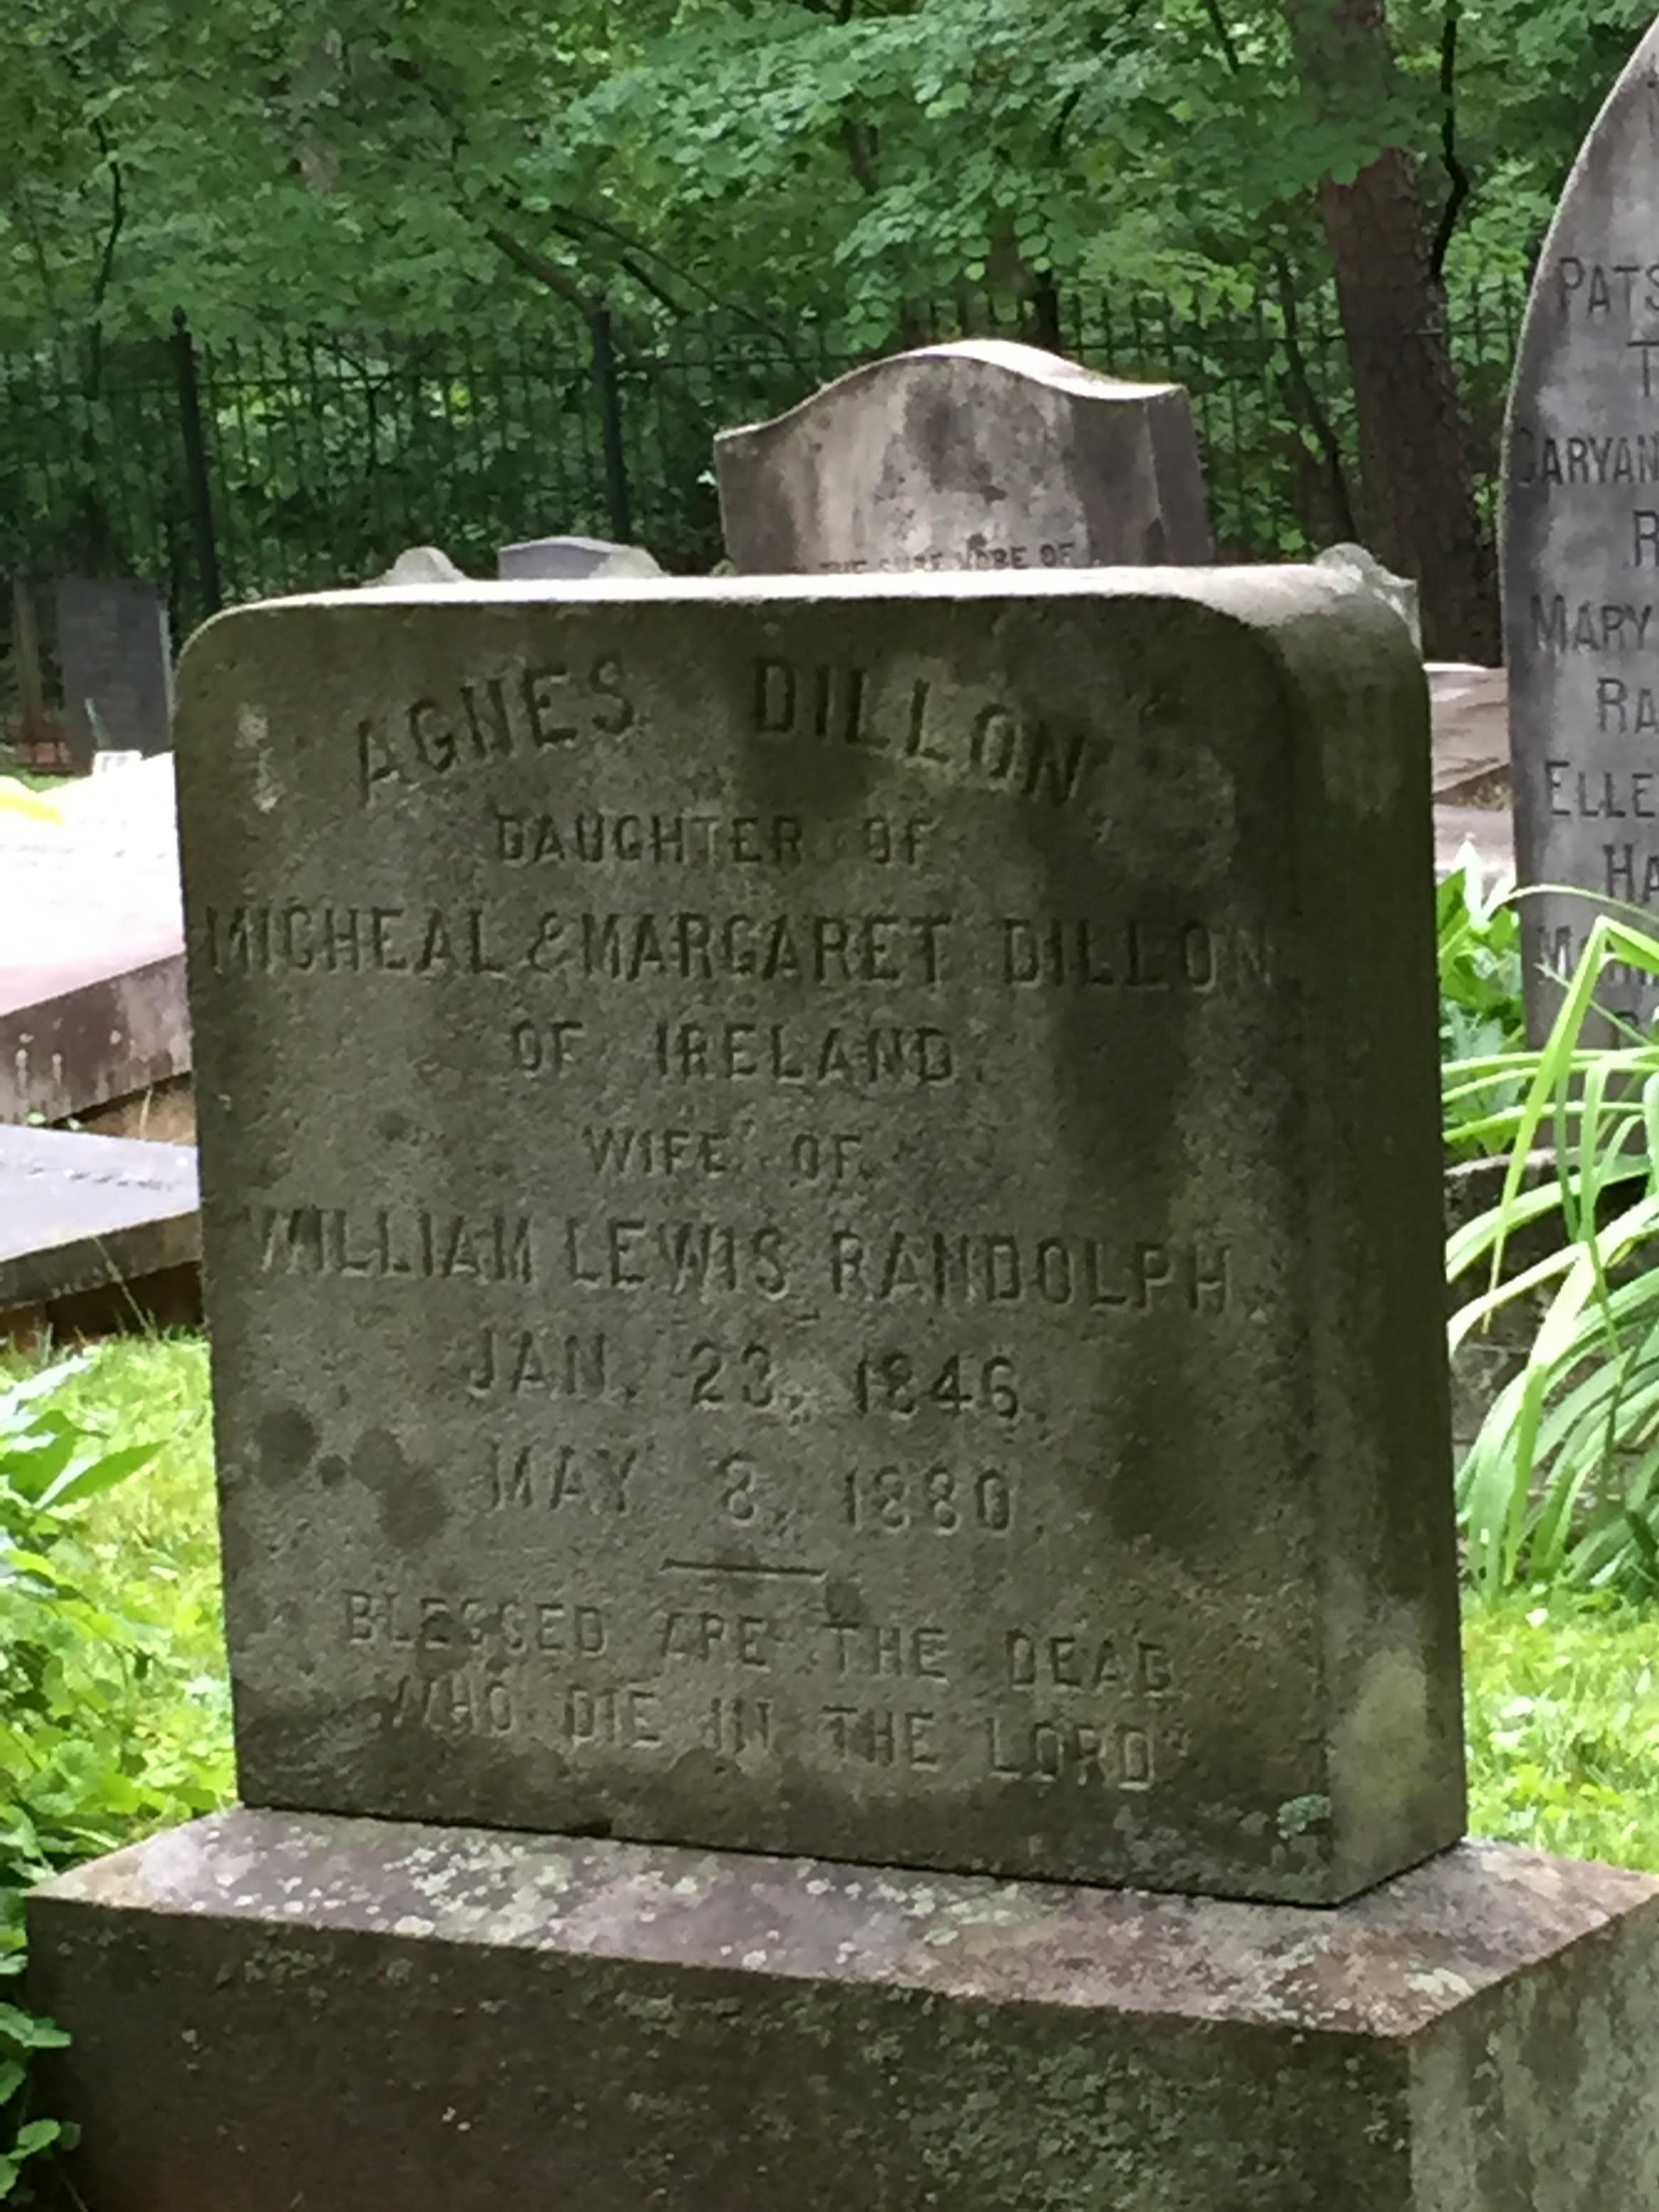 Irish grave in Thomas Jefferson's private burial plot. (Photo courtesty of the author)